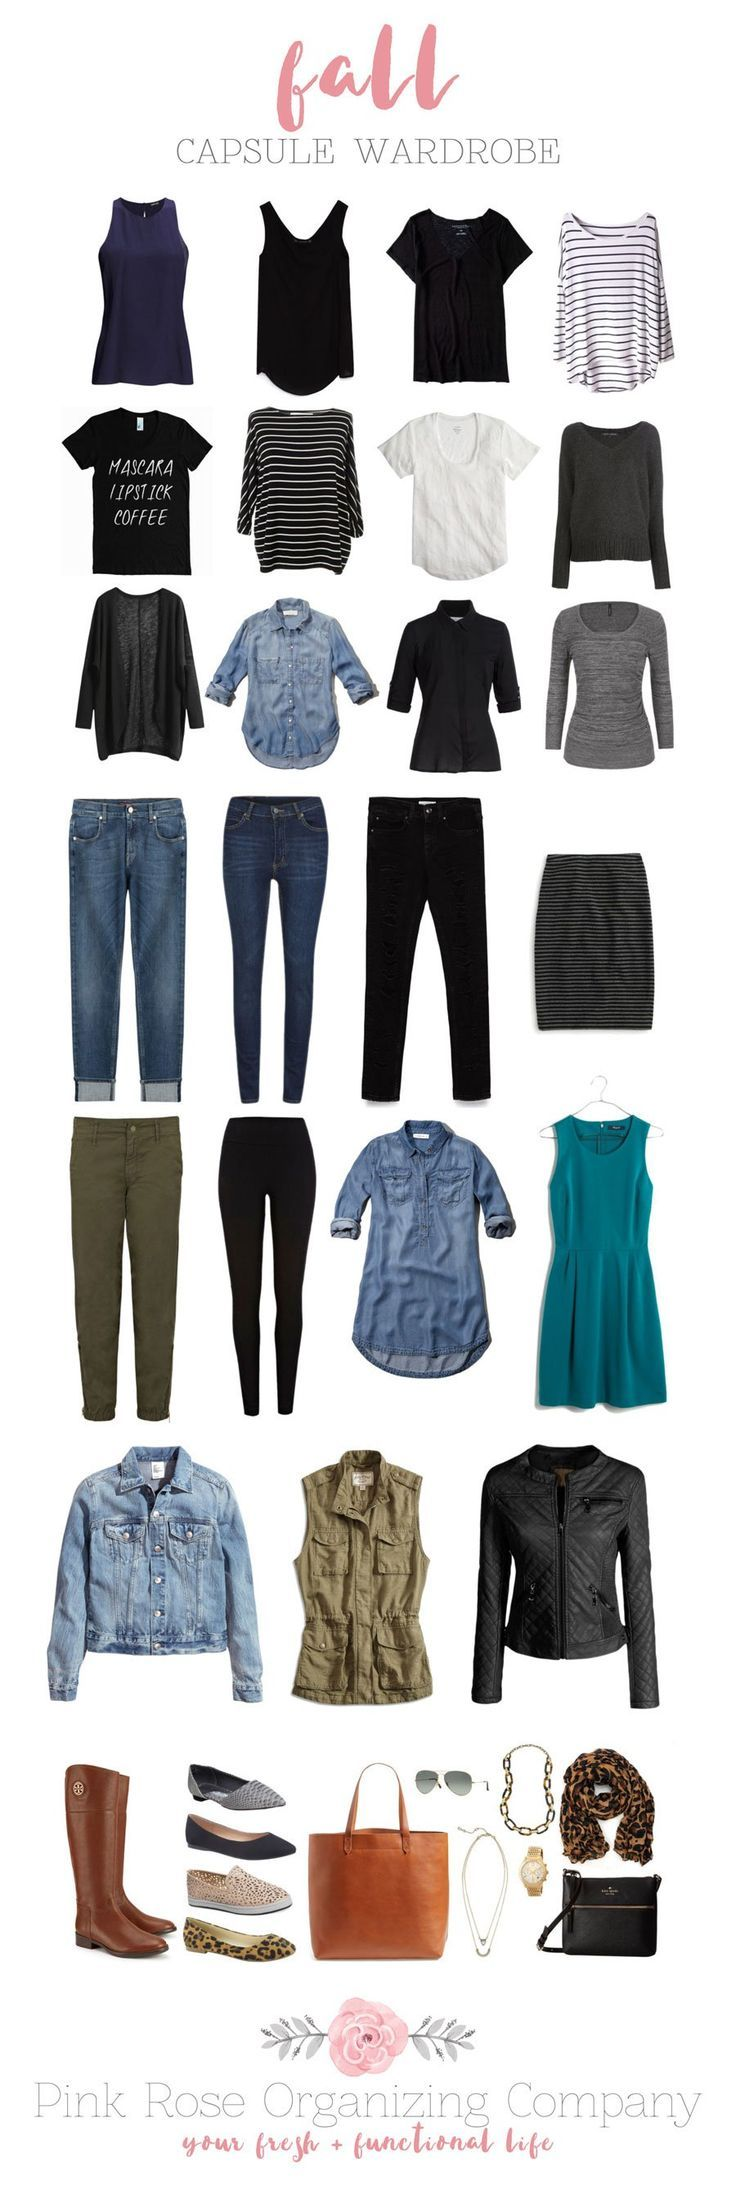 Capsule Wardrobe: Fall 2015 | Pink Rose Co.